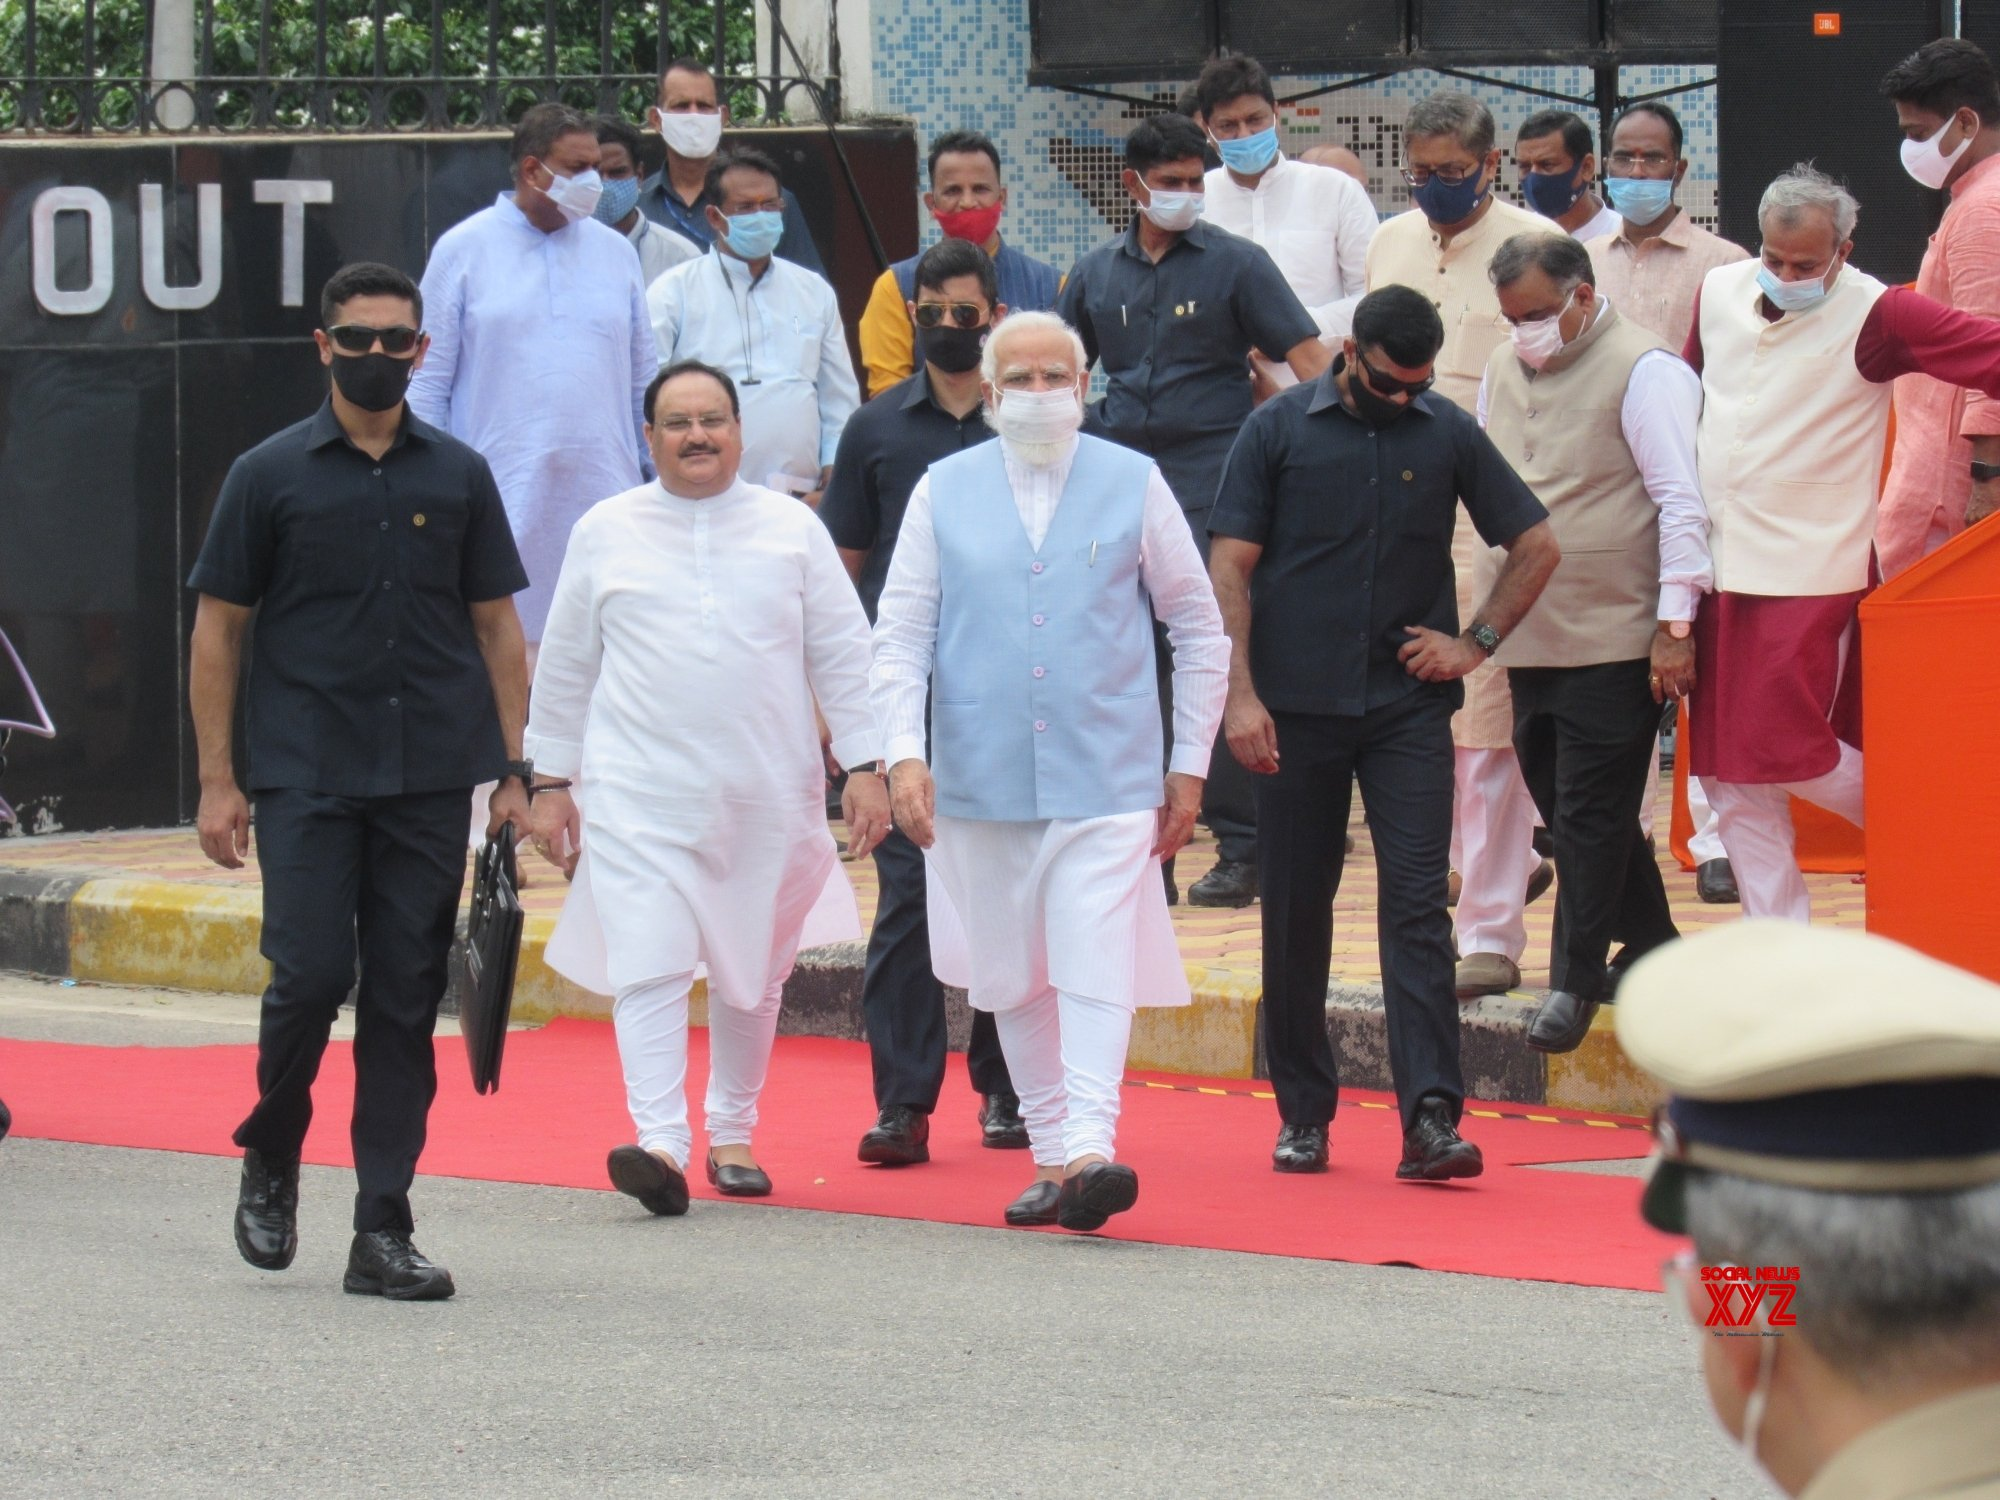 New Delhi: Prime Minister Narendra Modi welcomed by BJP leaders and supporters on his return to India from US visit, at Palam Airport in New Delhi. #Gallery